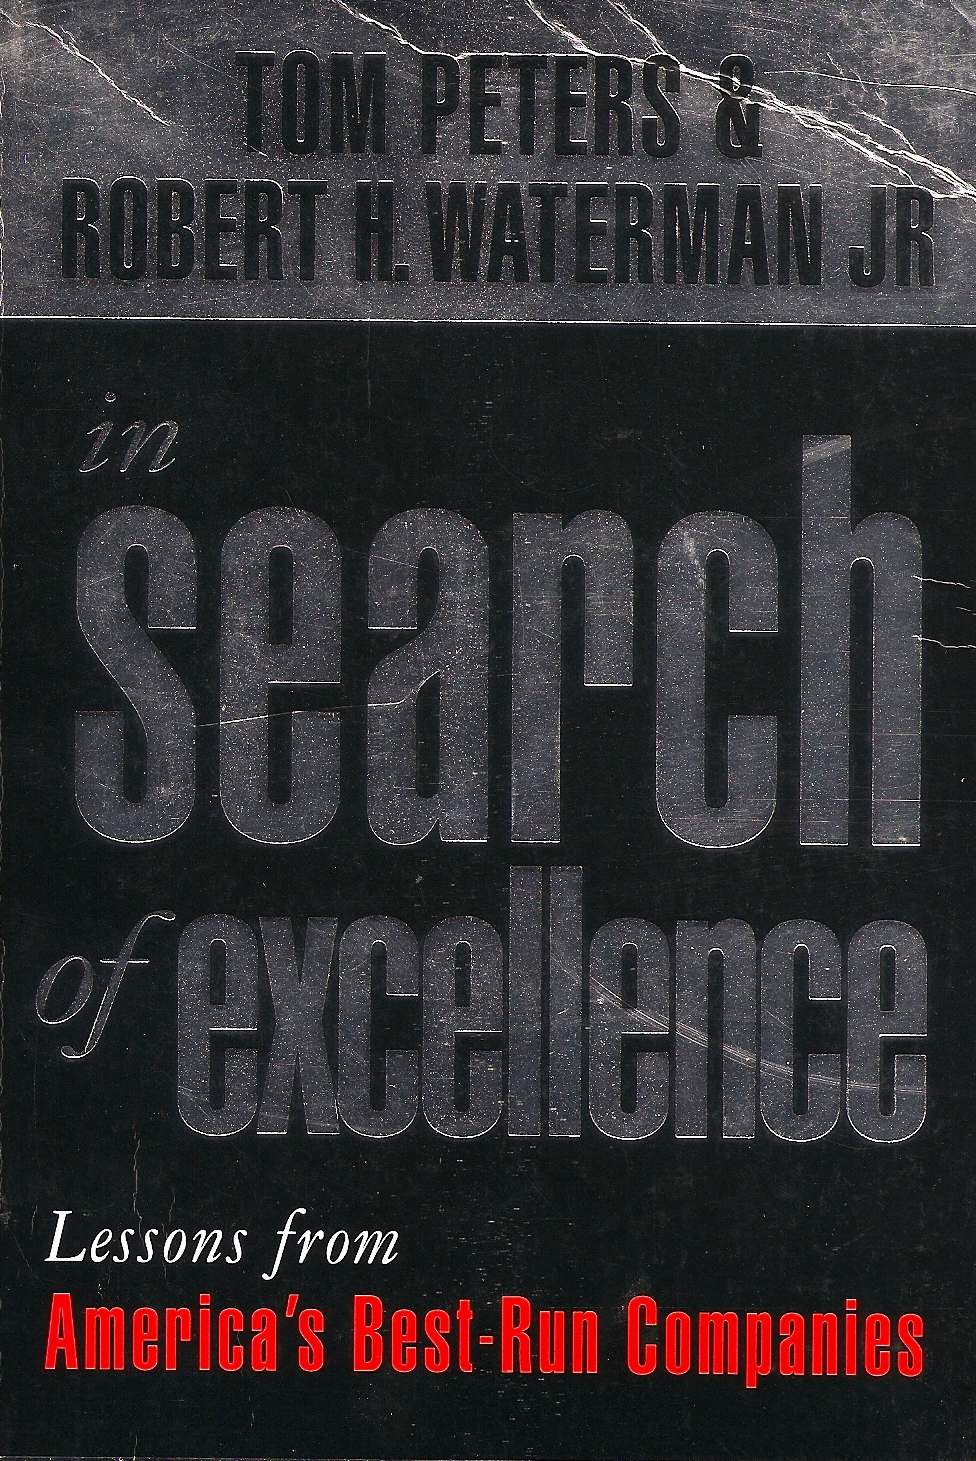 In search of excellence peters waterman greatest hits what the book says search publicscrutiny Gallery